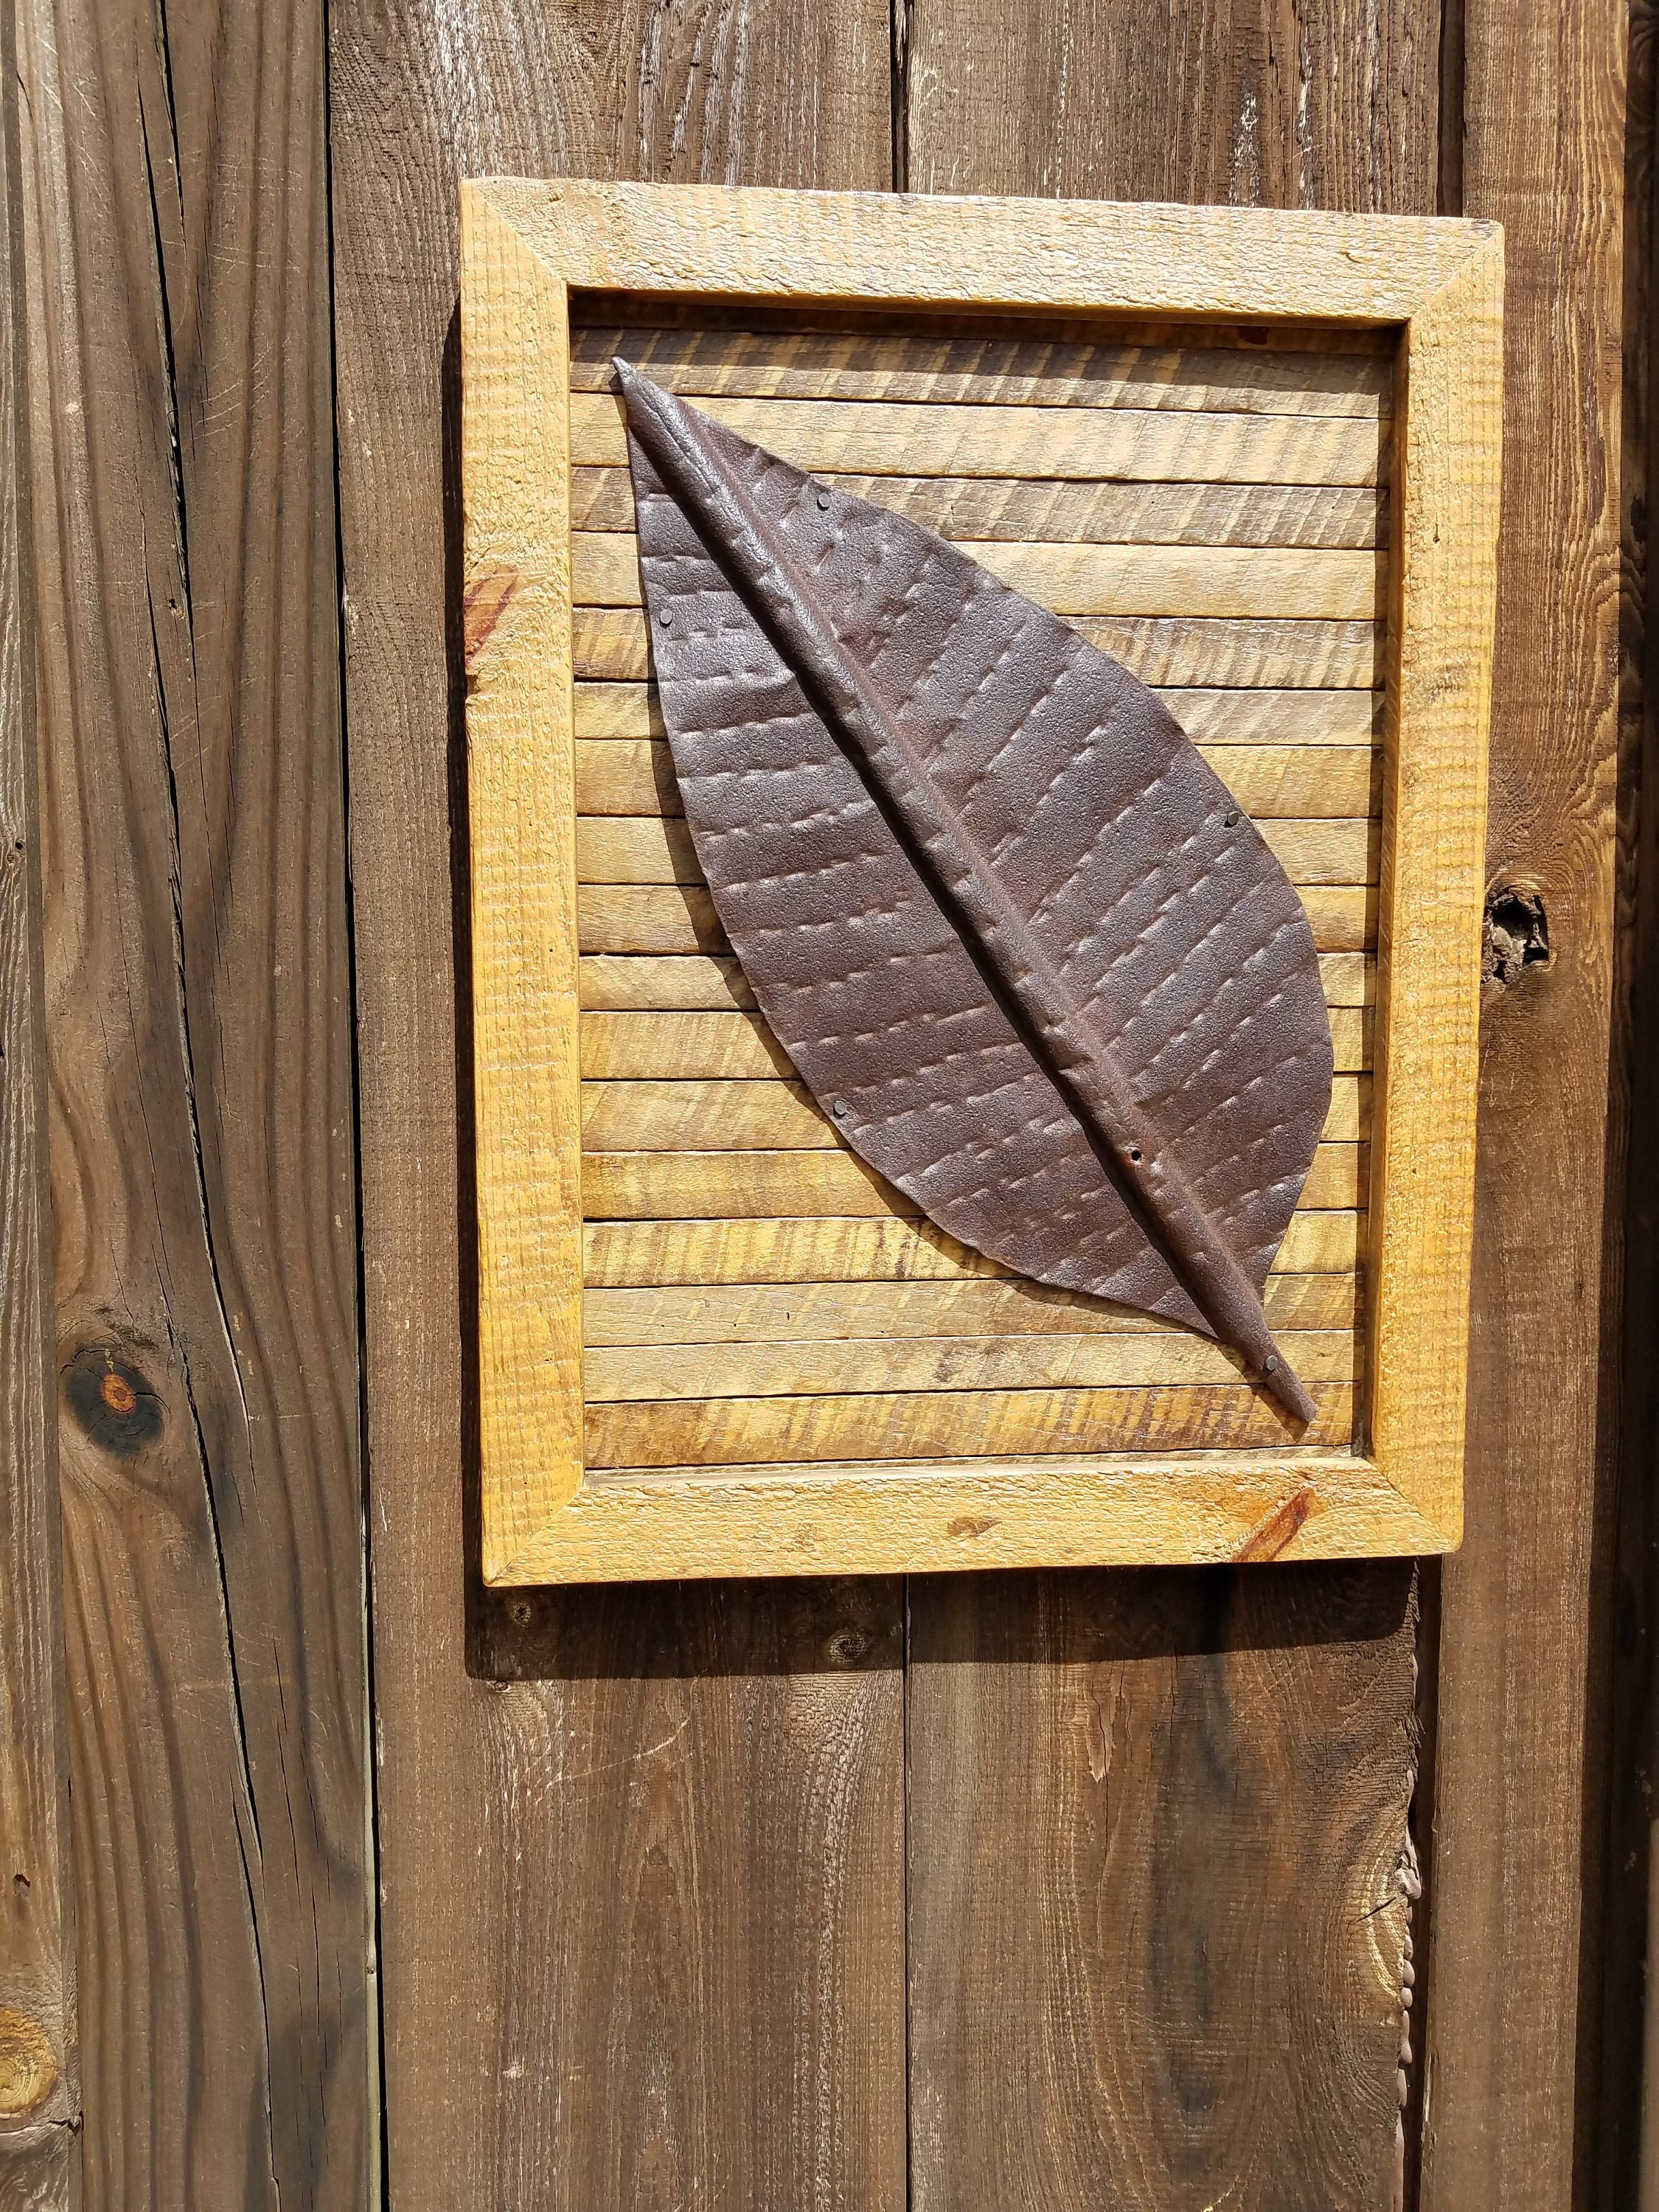 Delicieux Barn Wood Art   (Rescued And Reclaimed) Barn Roof Tin Tobacco Leaf On  Tobacco Stick / Barn Wood Frame/Folk Art  Unique From BarnWoodBlessed